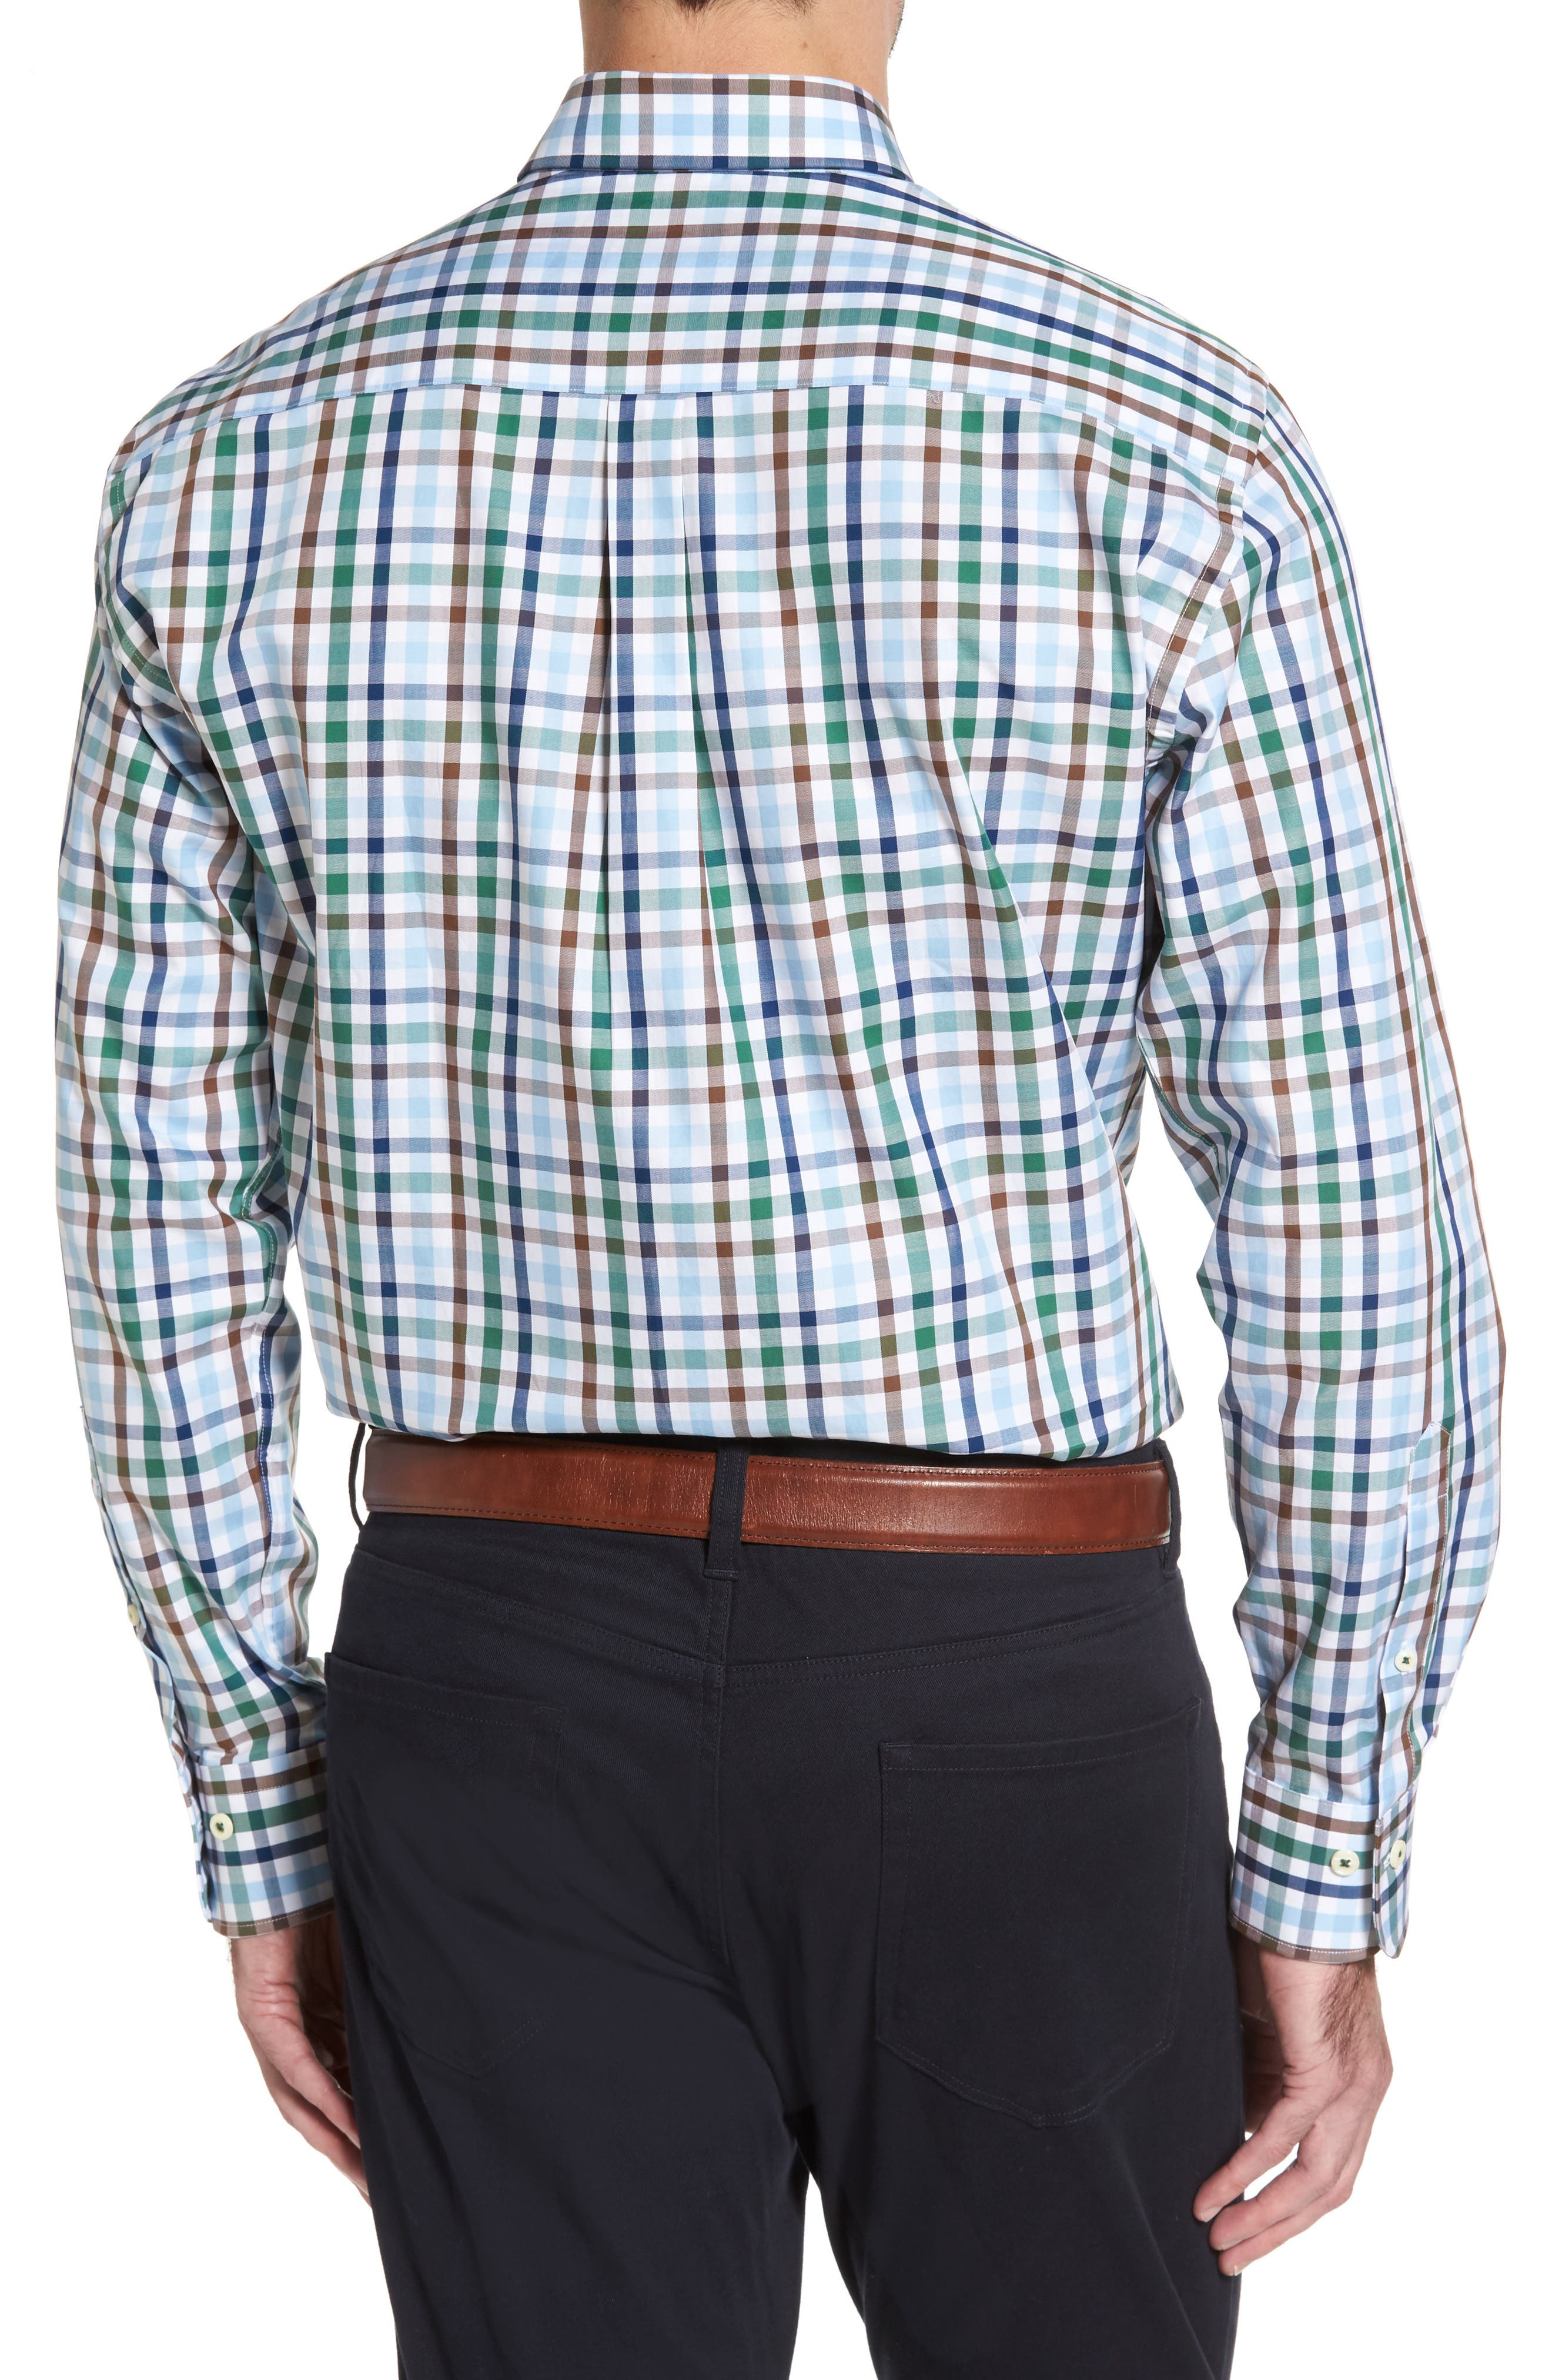 Trail Check Sport Shirt,                             Alternate thumbnail 2, color,                             314